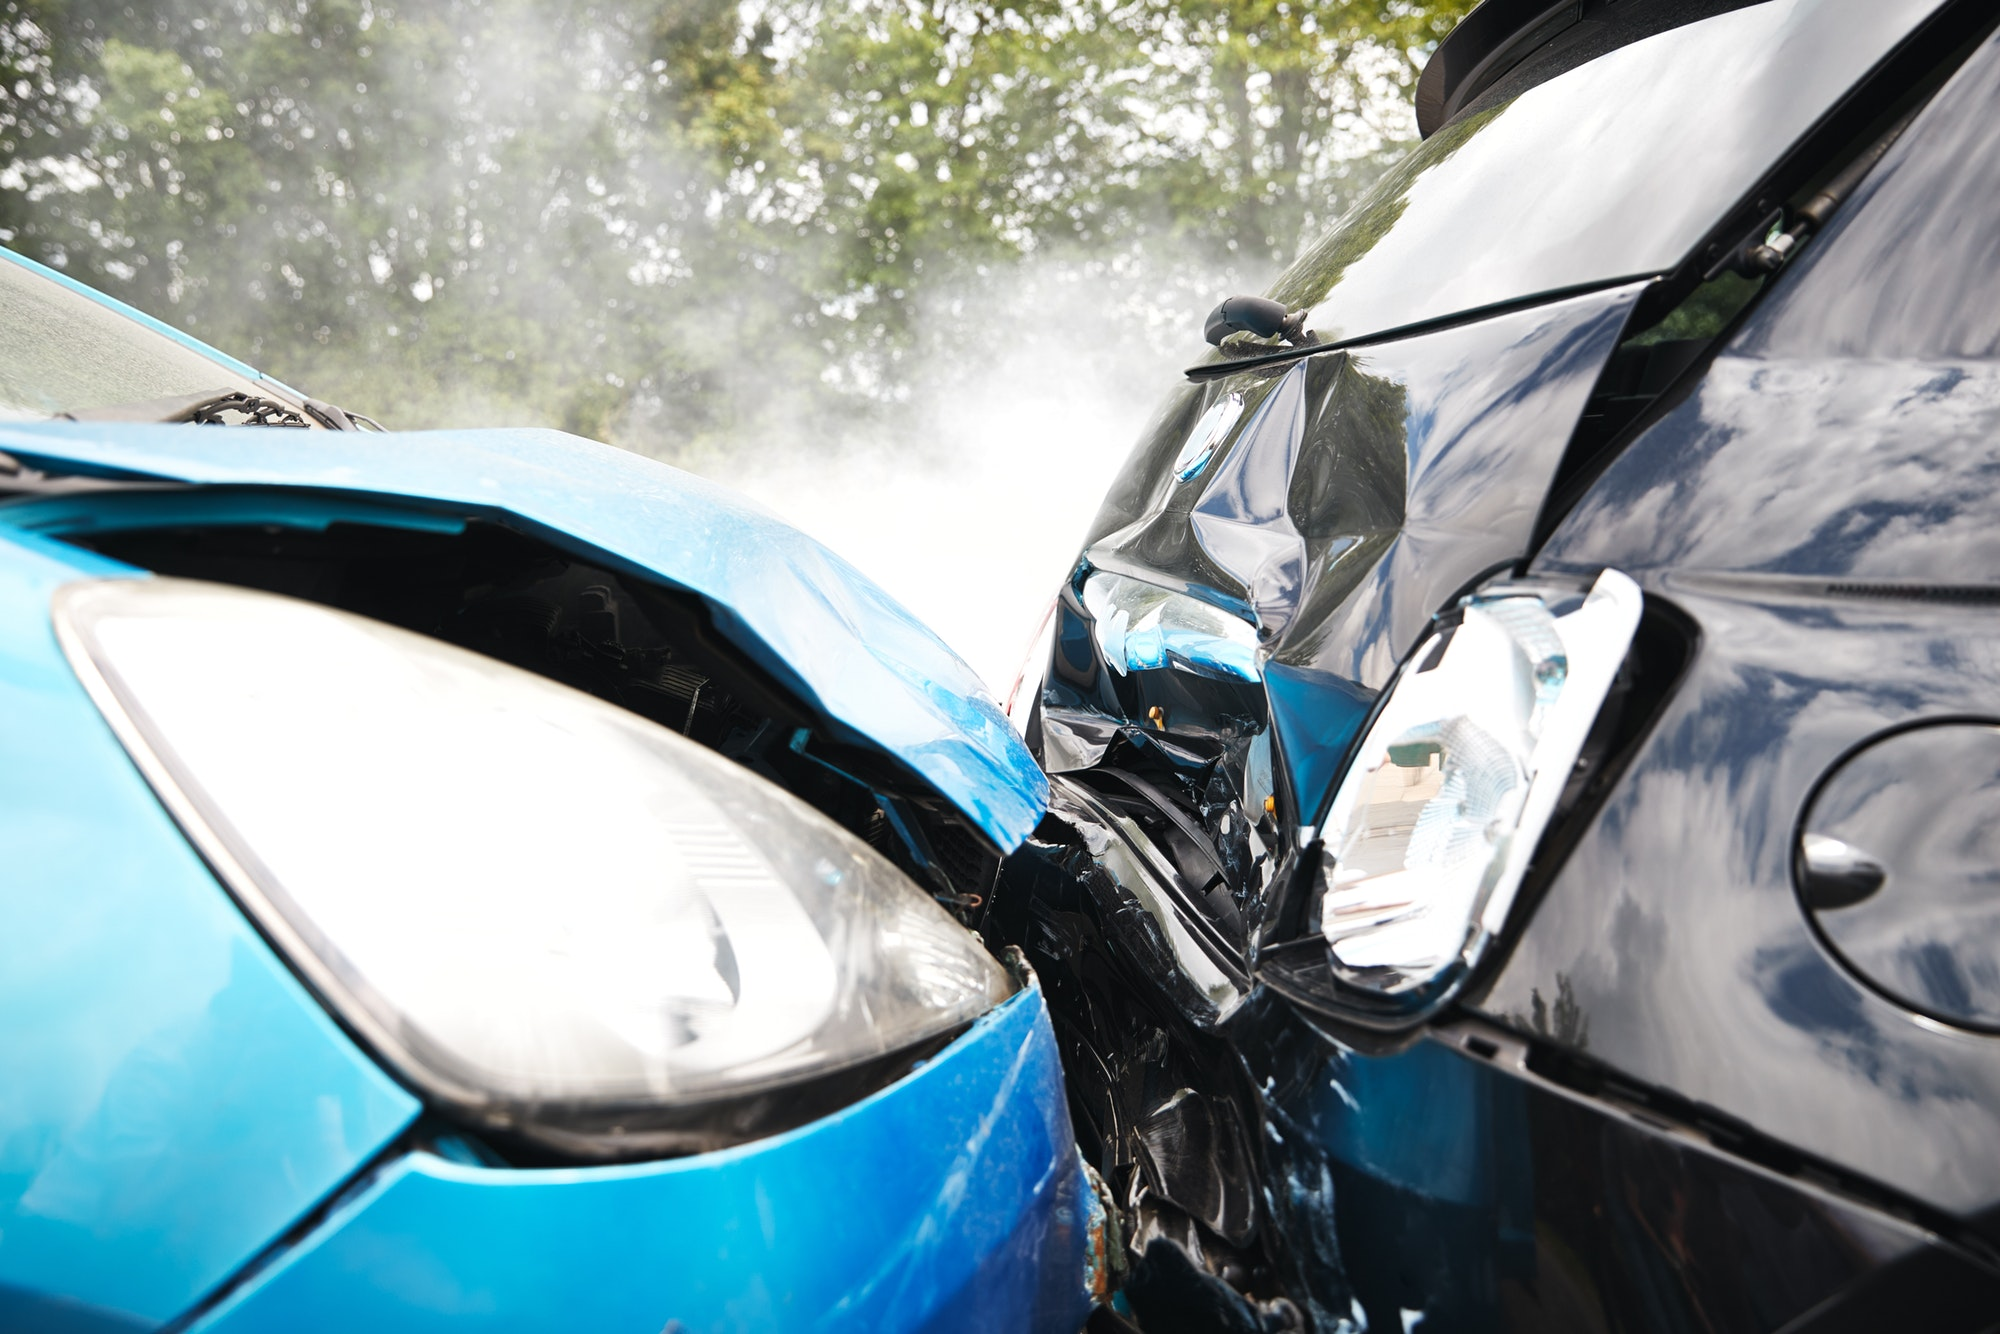 Make sure your car is totaled before getting a salvage certificate